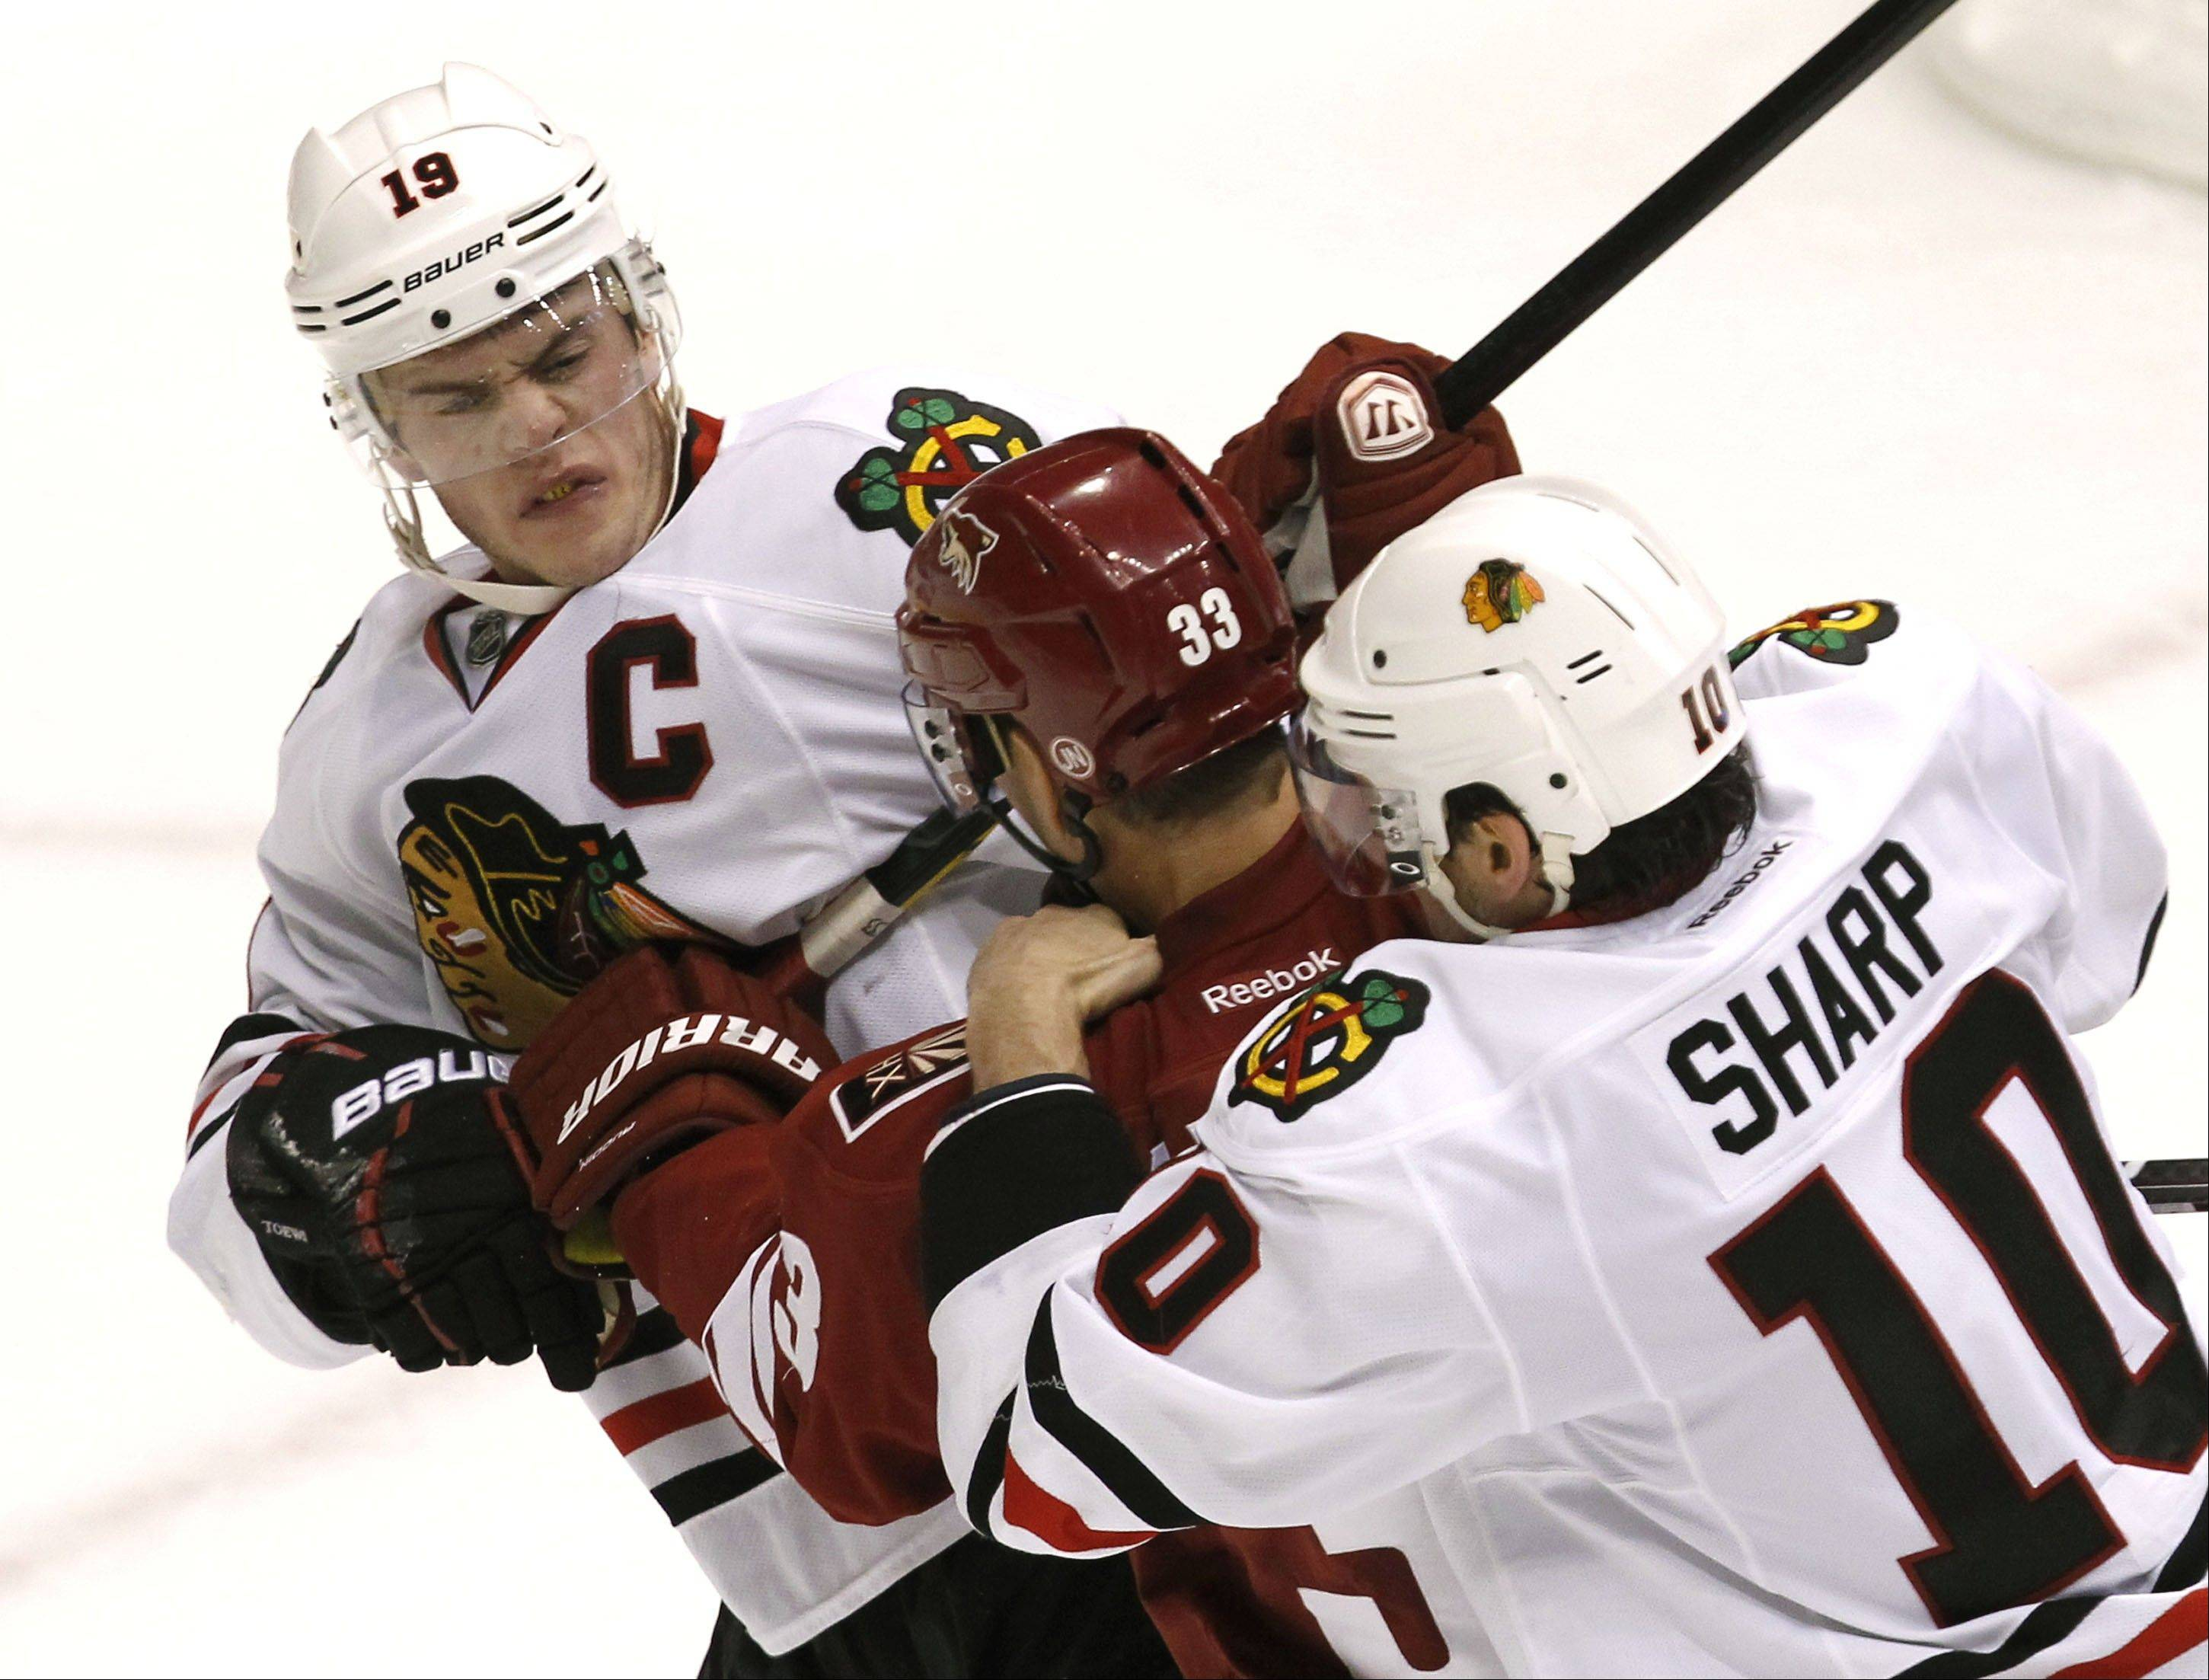 In their Feb. 11 game in Arizona, Blackhawks captain onathan Toews scuffled with Phoenix Coyotes' Adrian Aucoin as teammate Patrick Sharp arrived to help Toews. The Coyotes blanked the Blackhawks 3-0.